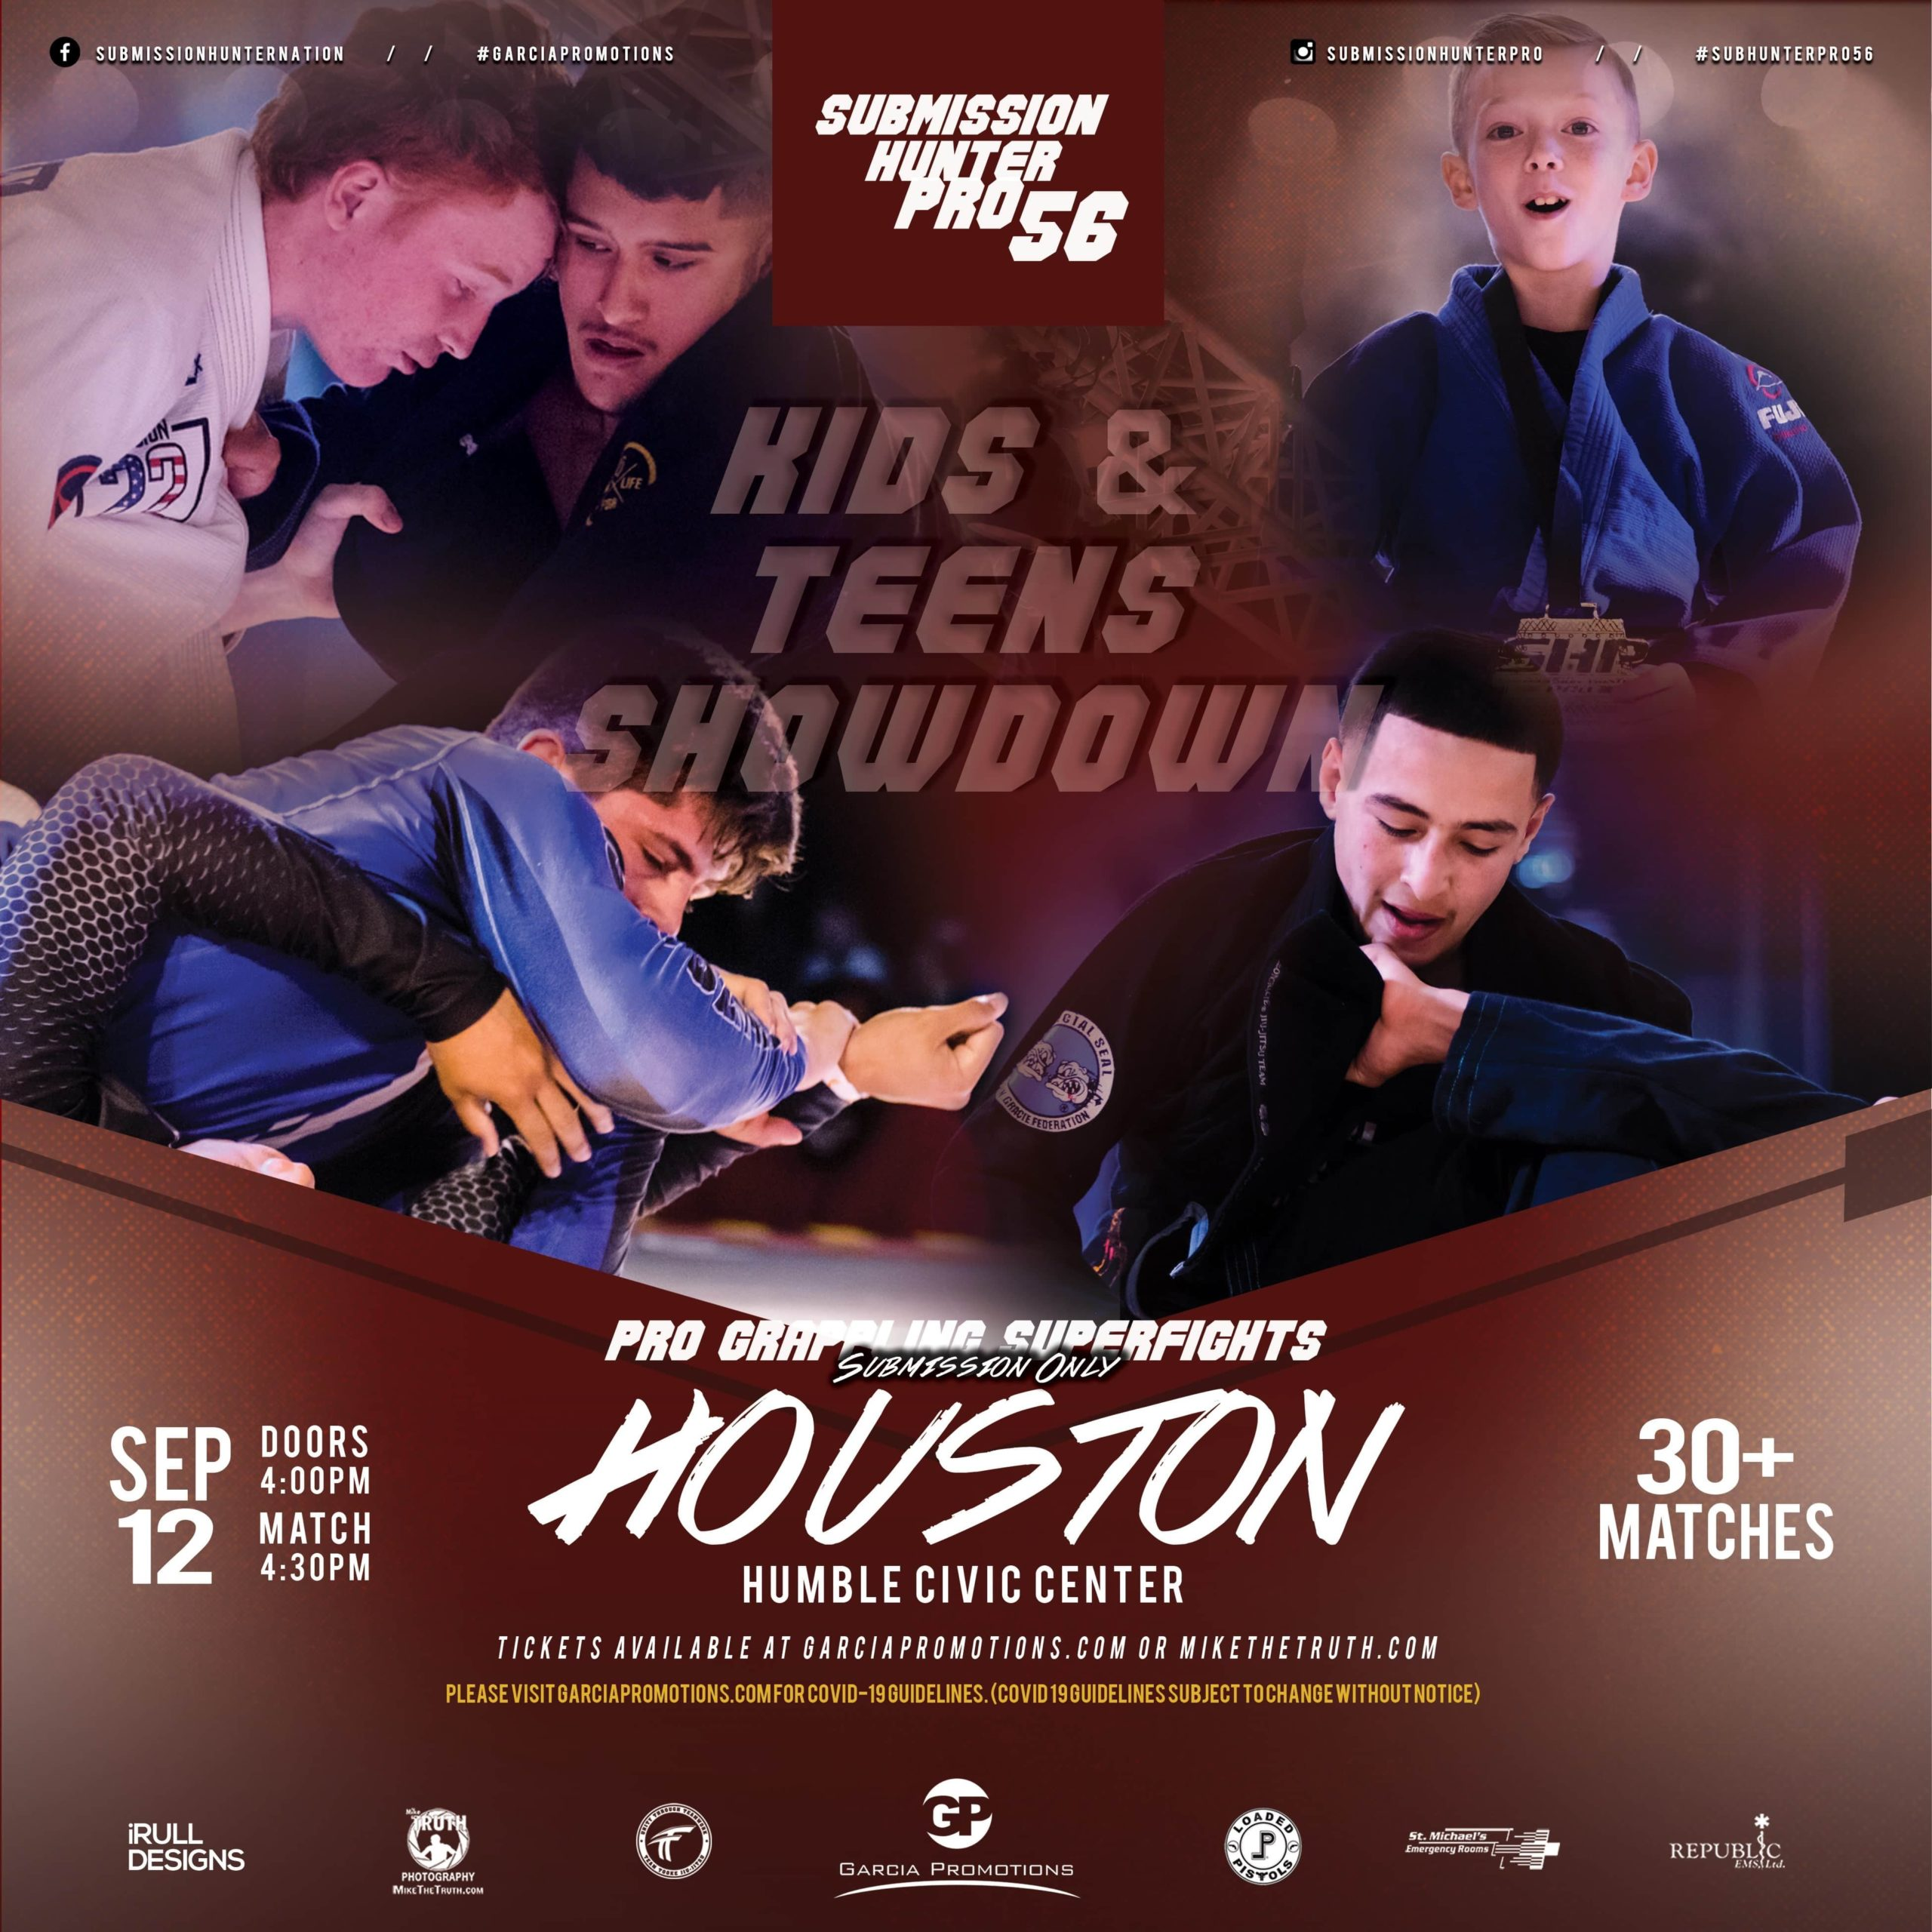 PRO GRAPPLING SUPERFIGHTS - KIDS & TEENS SHOWDOWN